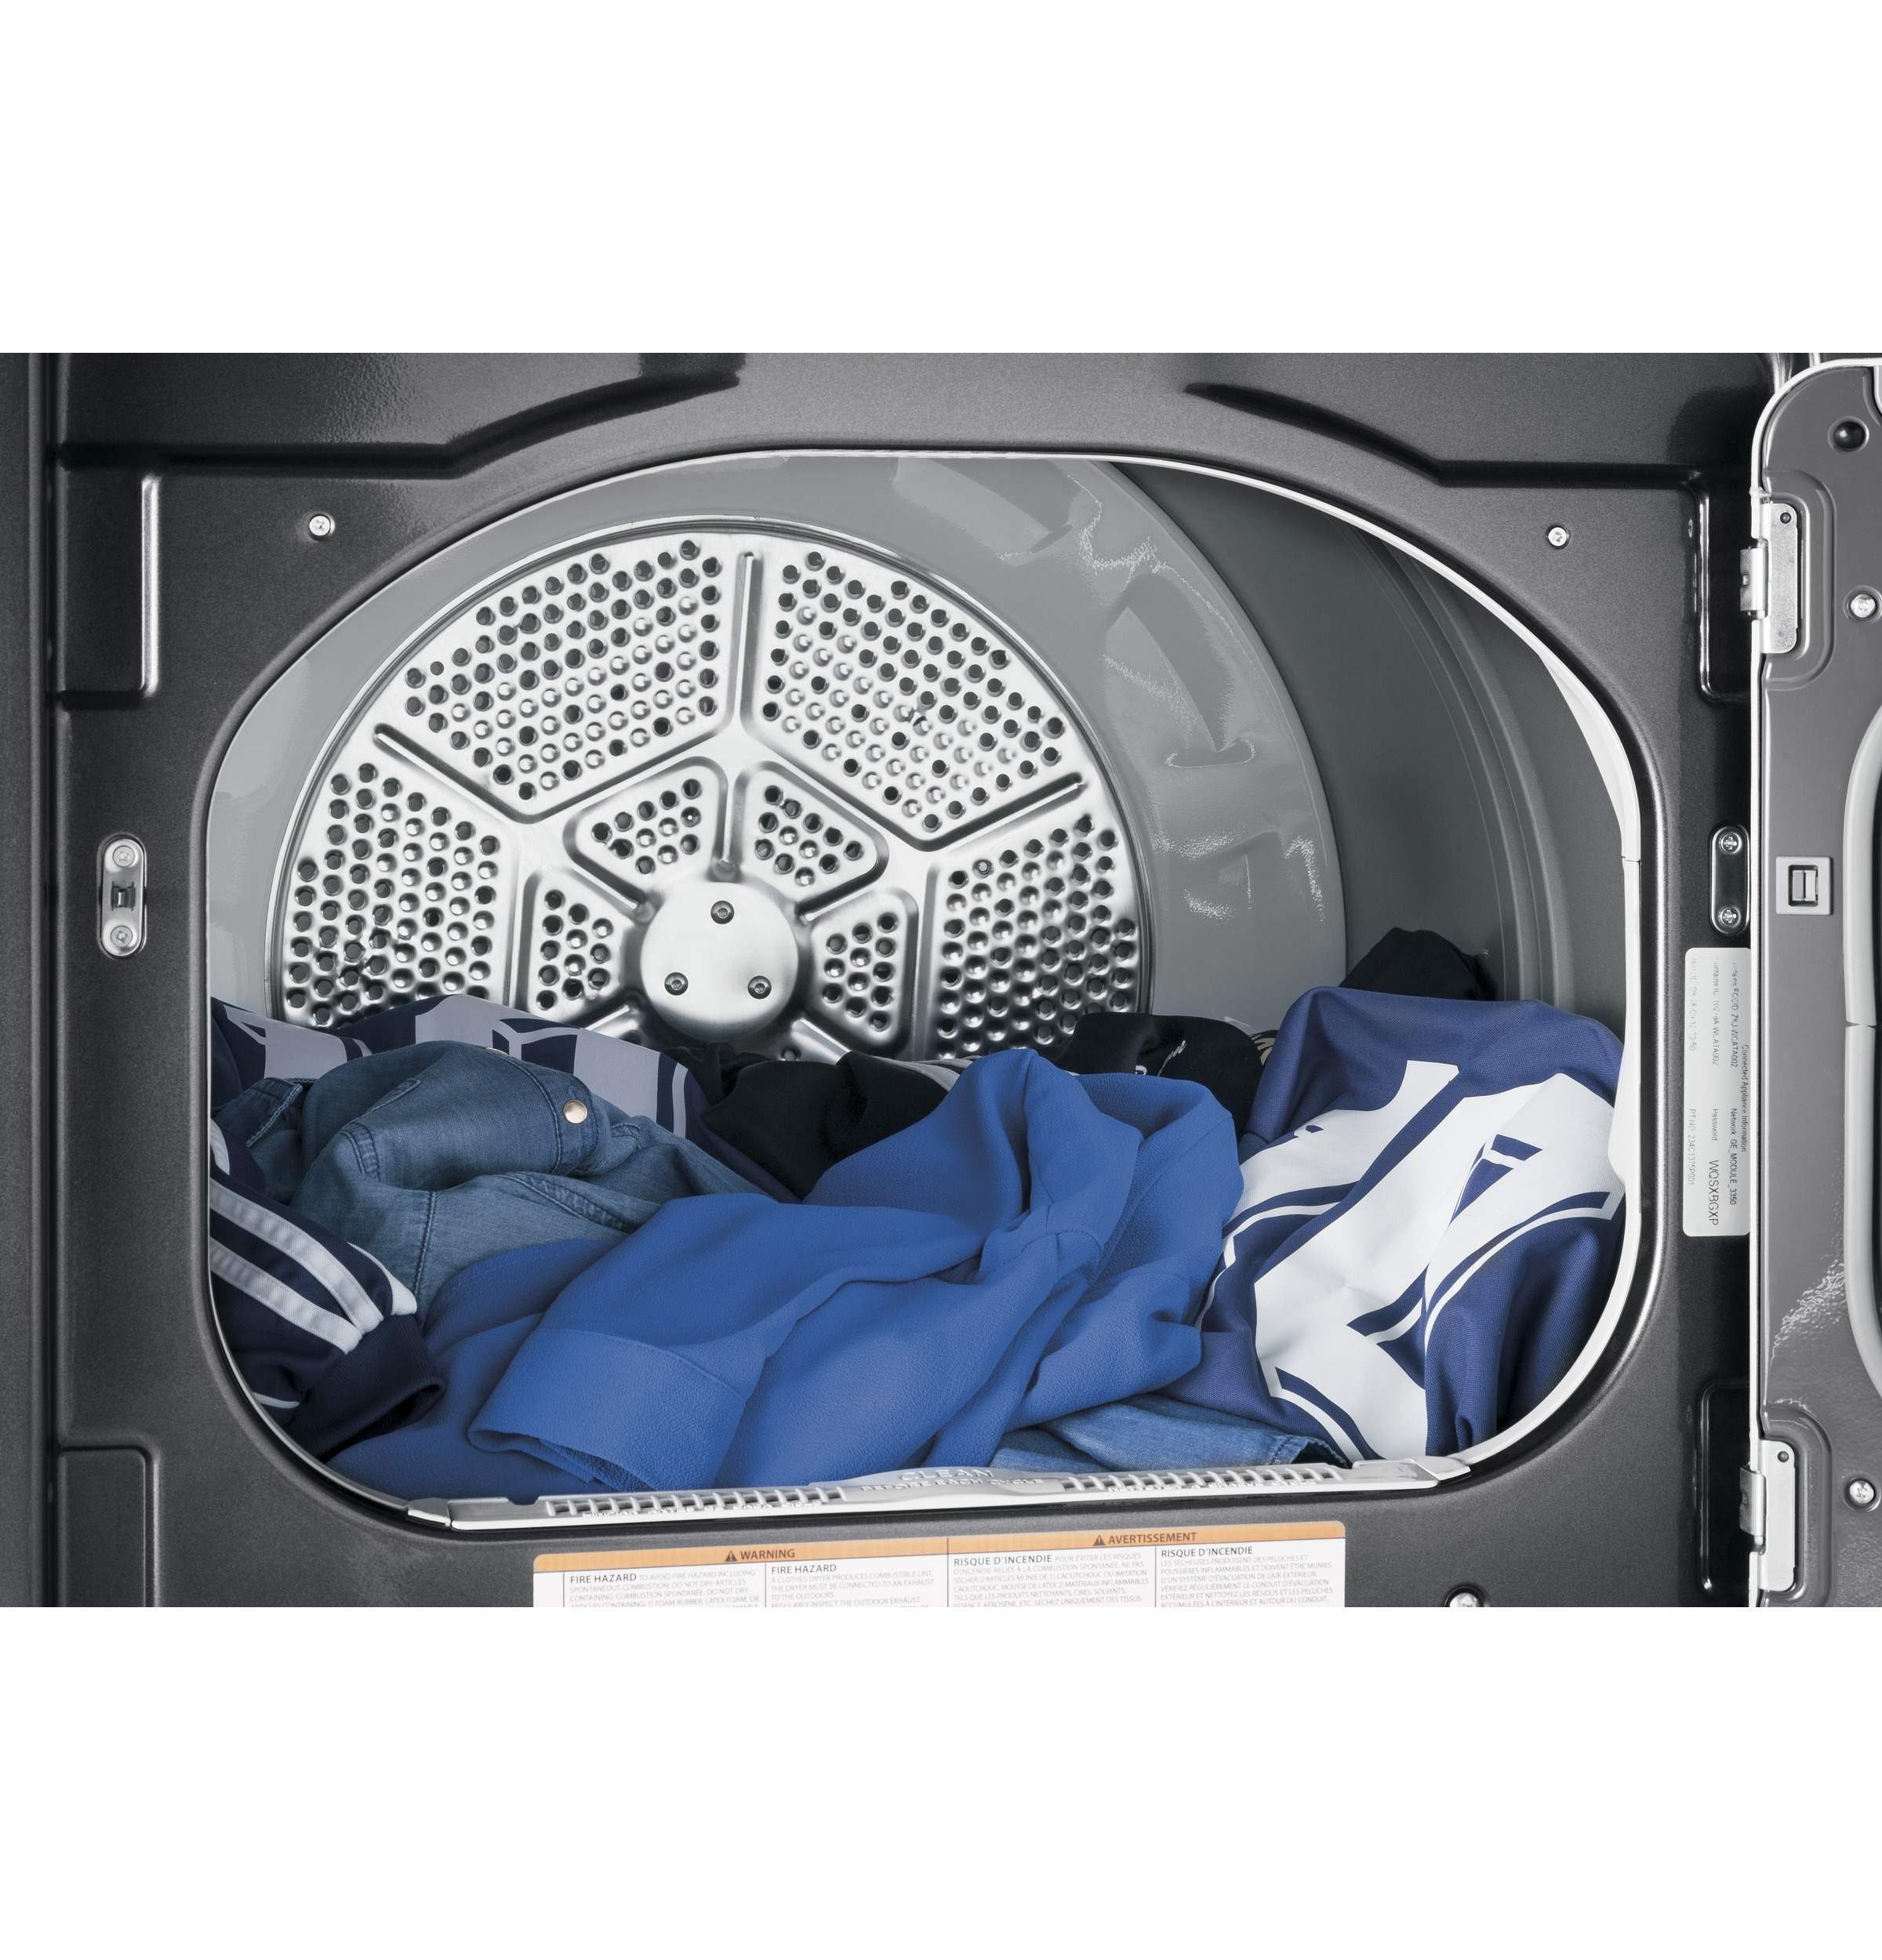 Model: GTD75ECPLDG | GE® 7.4 cu. ft. Capacity aluminized alloy drum Electric Dryer with HE Sensor Dry